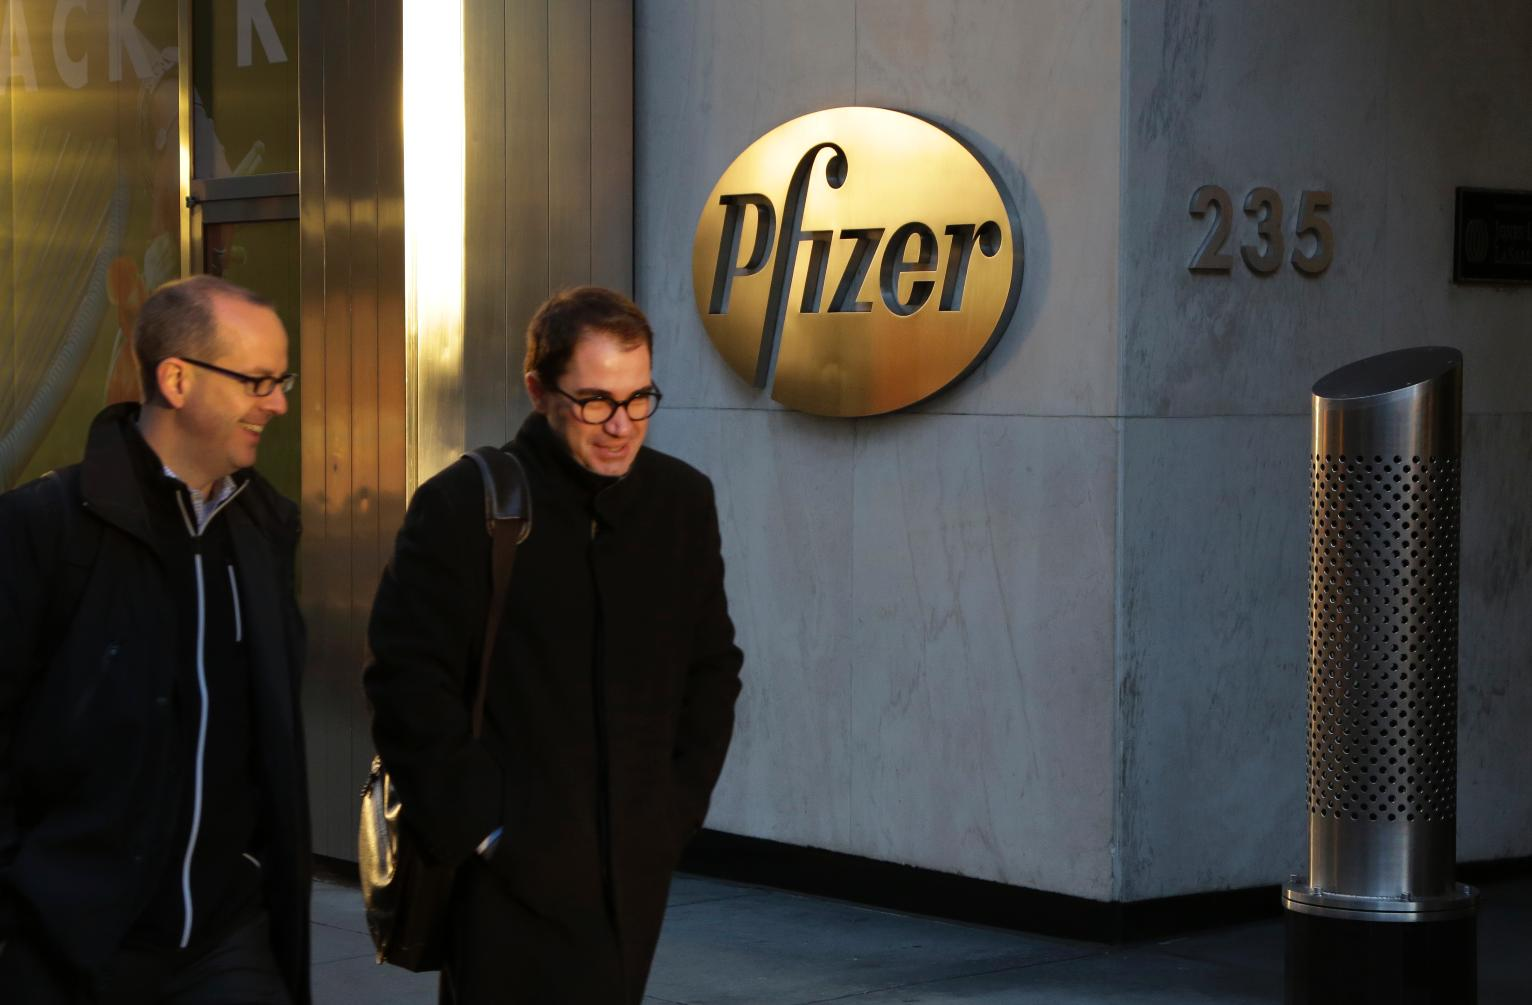 pfizer an economic report - pfizer inc lowered its revenue forecast for this year, blaming the stronger dollar, and increased its planned spending on research and development, as the drugmaker works to launch new drugs to .